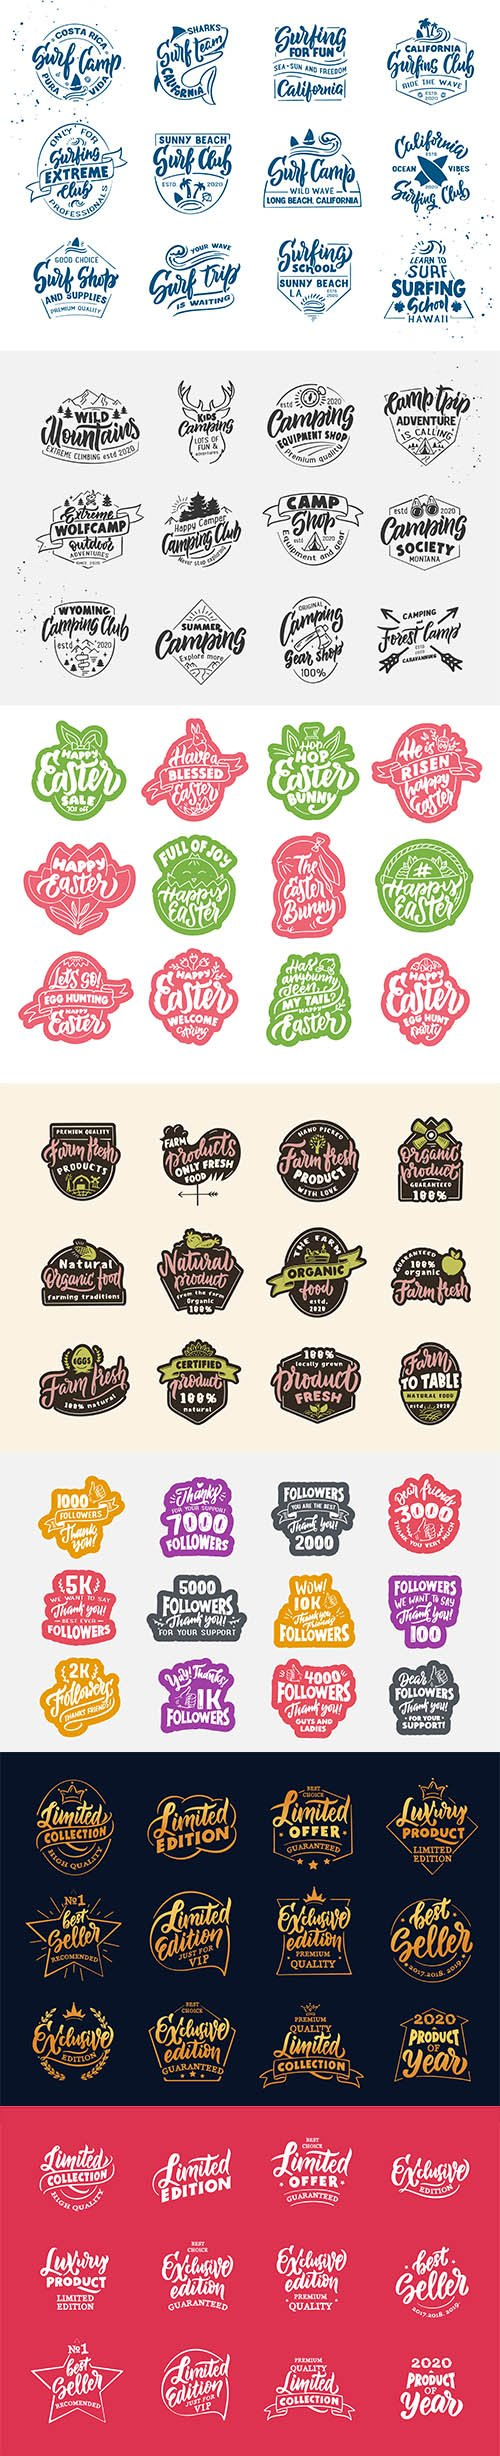 Vintage Limited Edition Product Badges